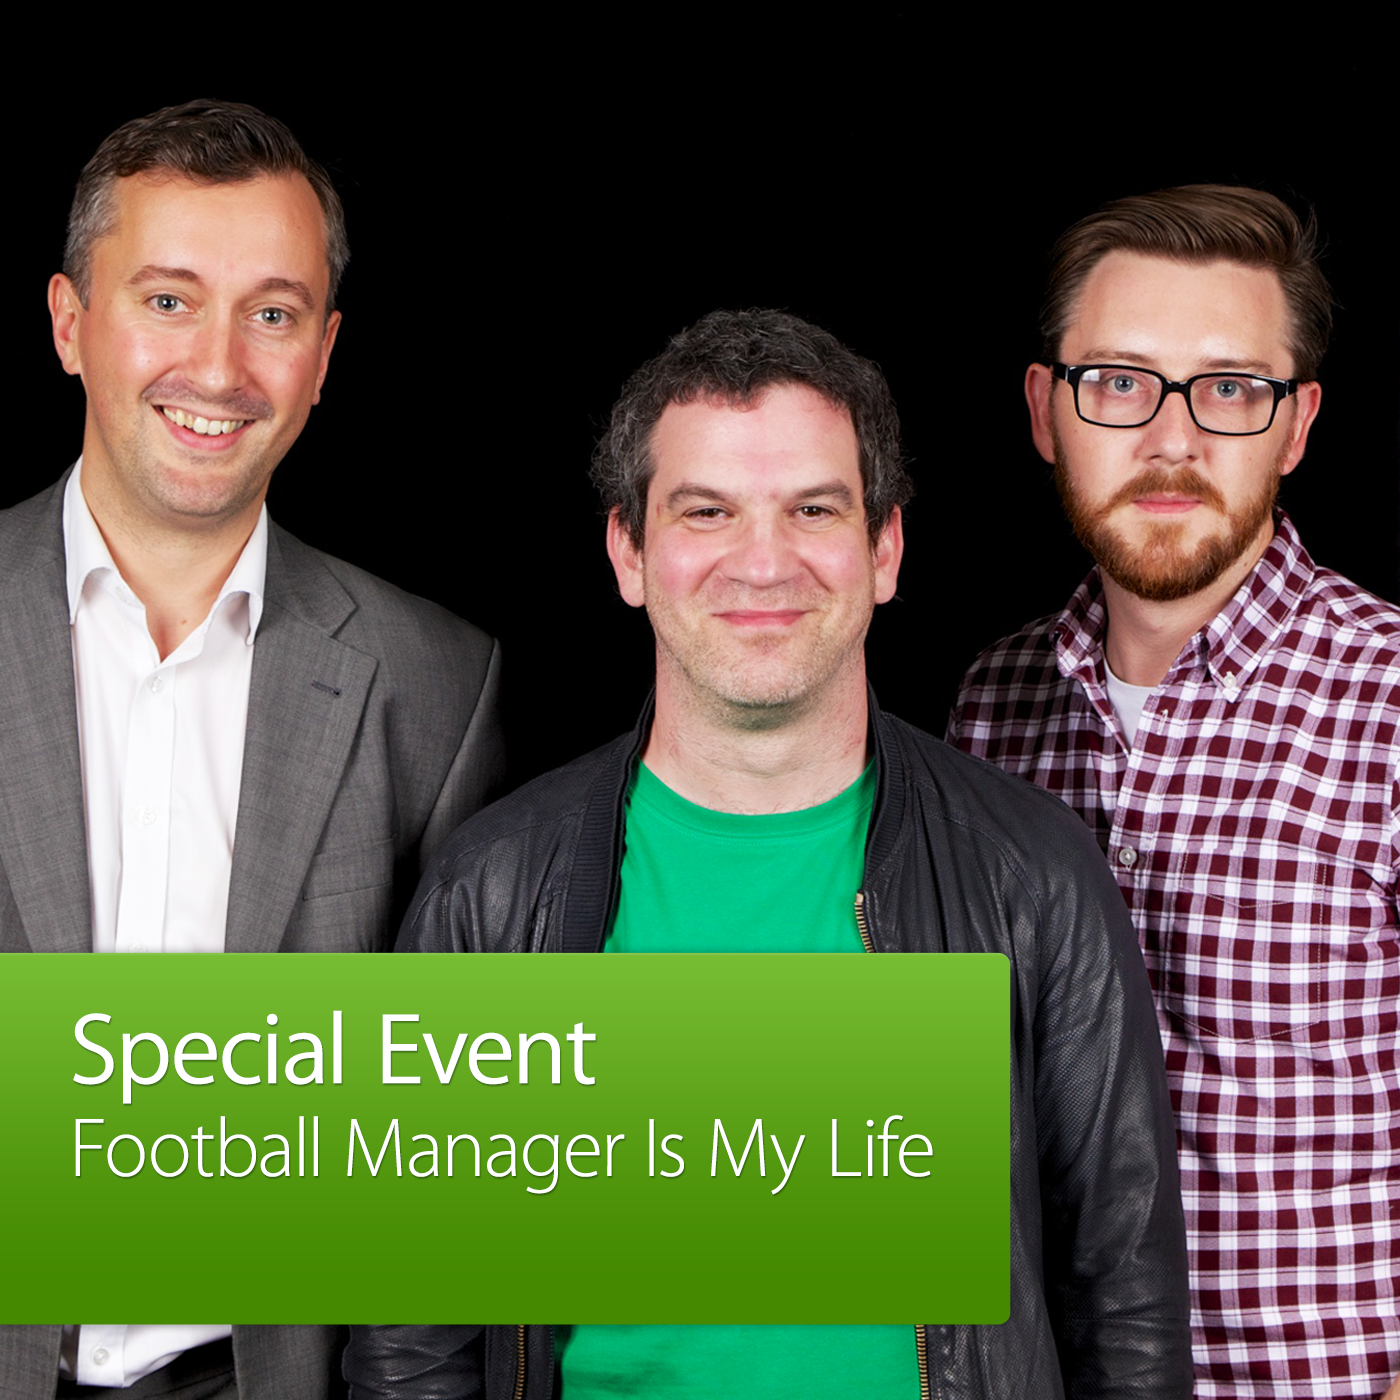 Football Manager Is My Life: Special Event